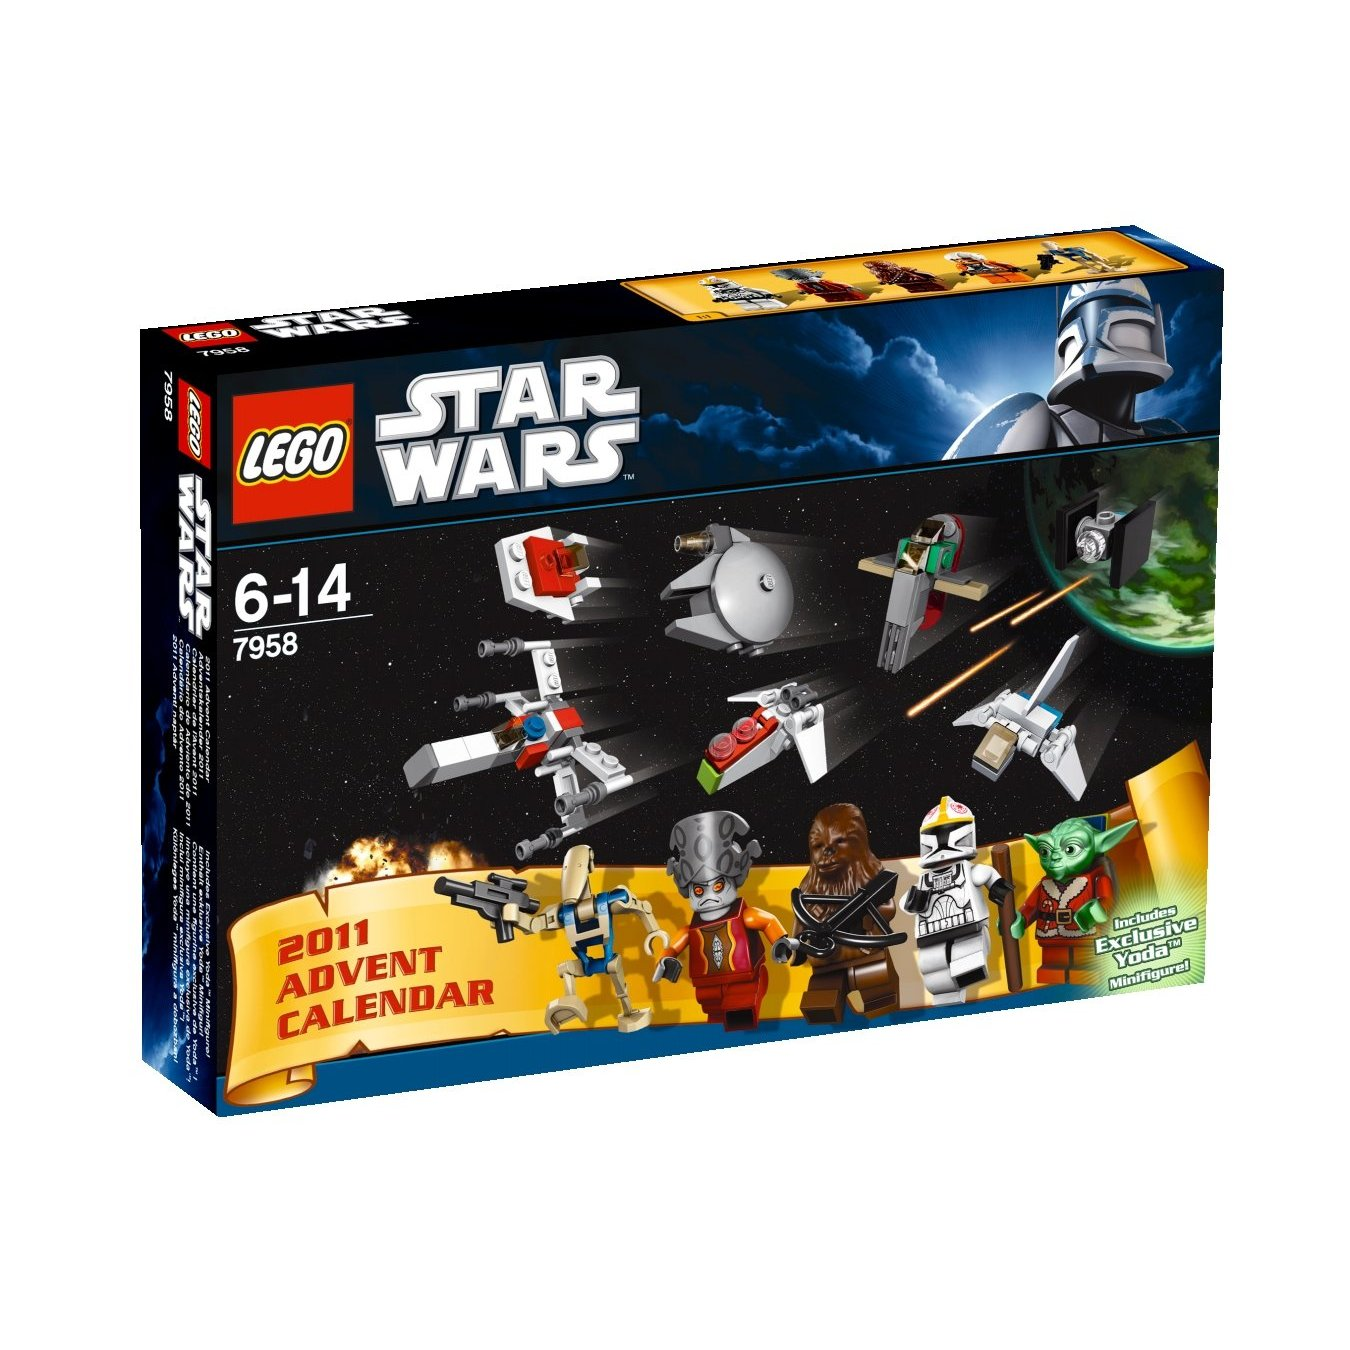 lego star wars adventi naptár 7958 7958 Star Wars Advent Calendar | Brickipedia | FANDOM powered by Wikia lego star wars adventi naptár 7958